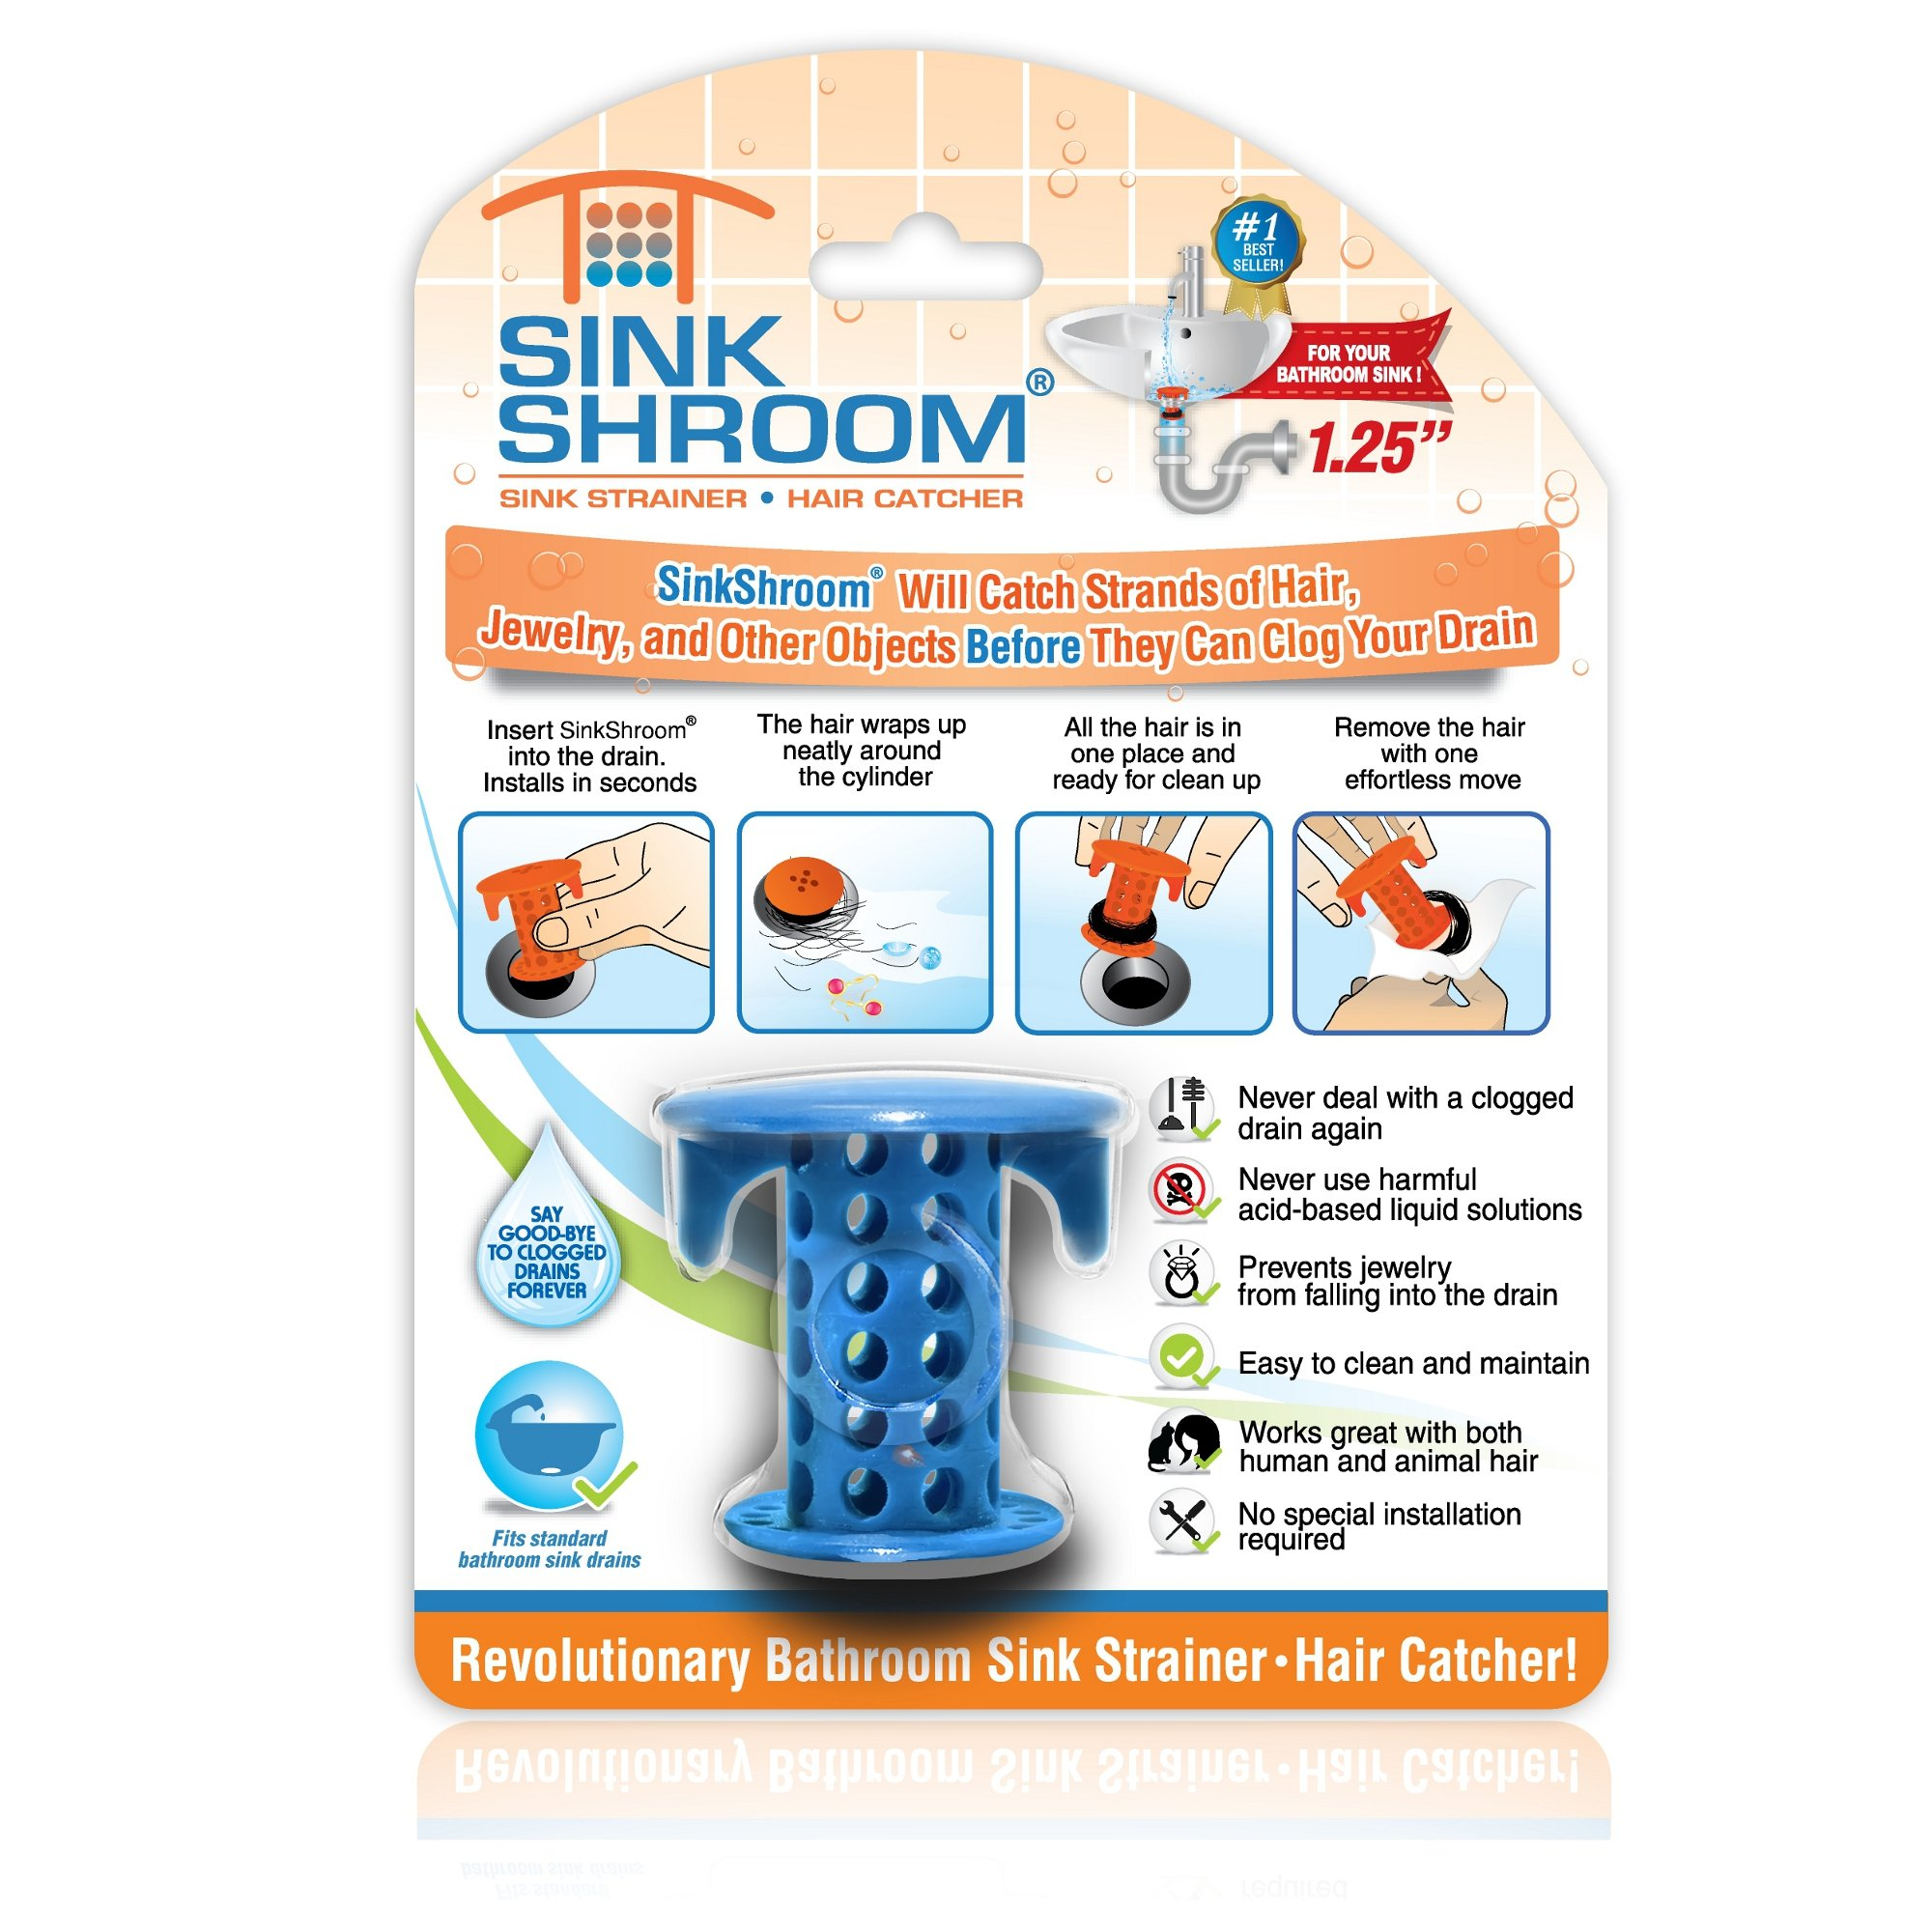 SinkShroom The Revolutionary Sink Drain Protector Hair Catcher/Strainer/Snare, Blue by TubShroom